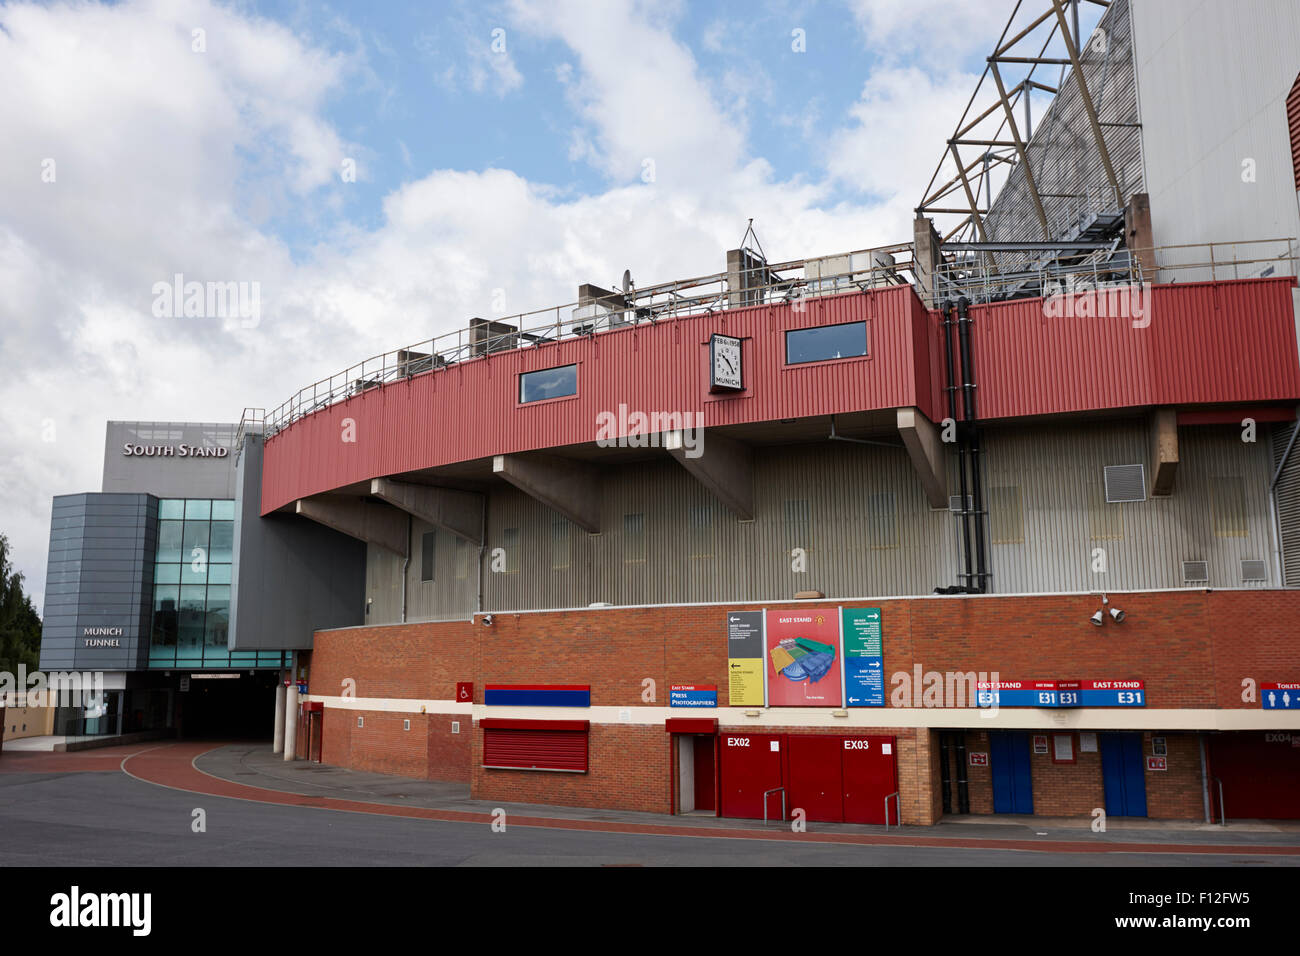 south stand munich clock and munich tunnel Manchester united old trafford stadium uk - Stock Image